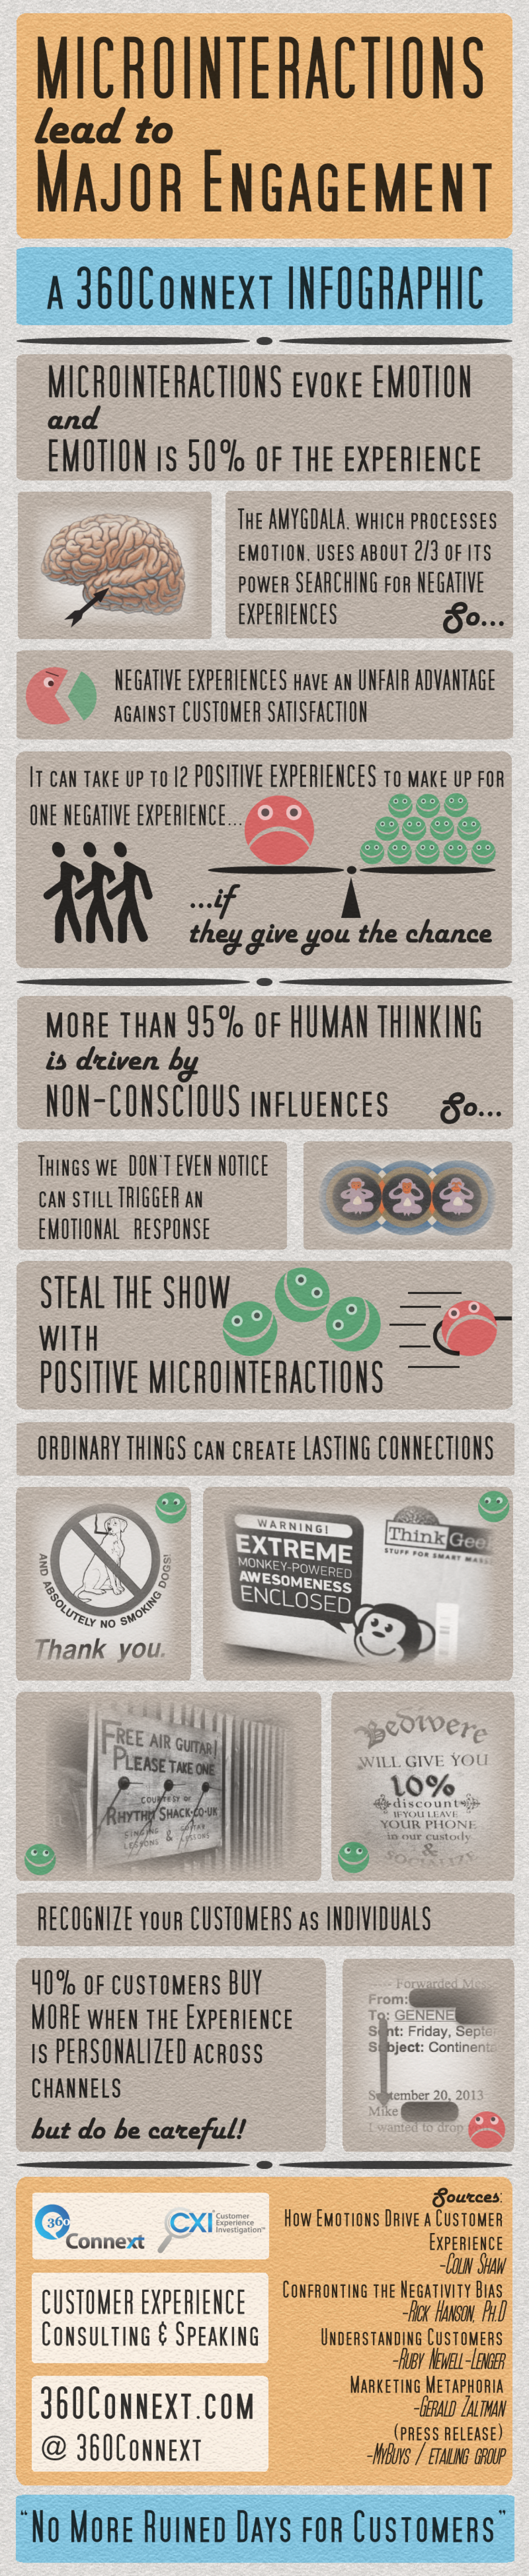 Microinteractions lead to Major Engagement Infographic